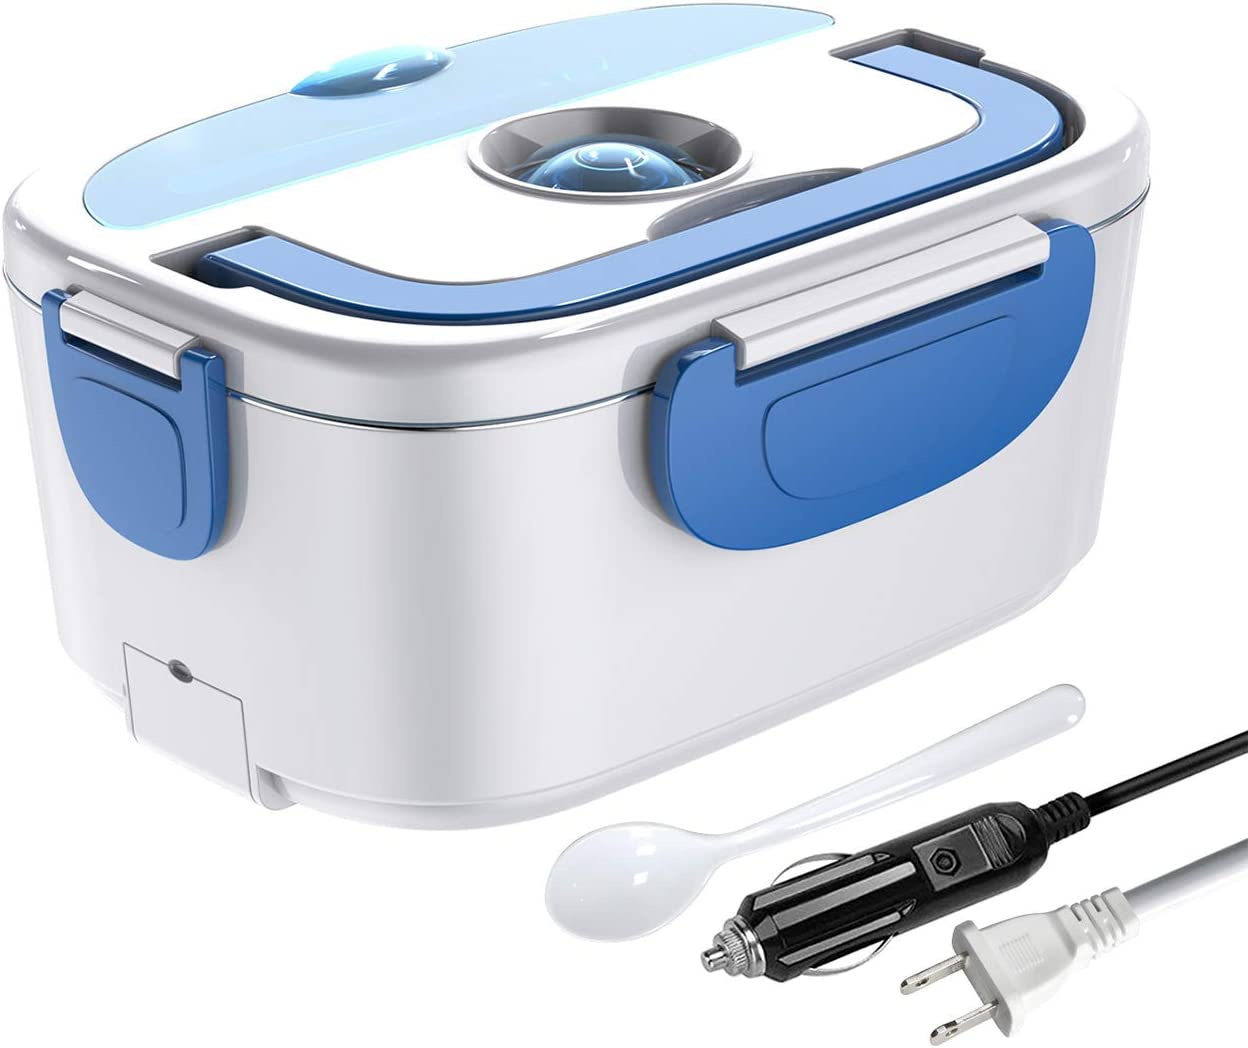 ErayLife Electric Lunch Heating Box, 2 in 1 Meal Heating Box 110V 12V, 1.5L Stainless Steel Container Removable,Spoon Included. Suitable for Car/Office/Picnic (Blue)